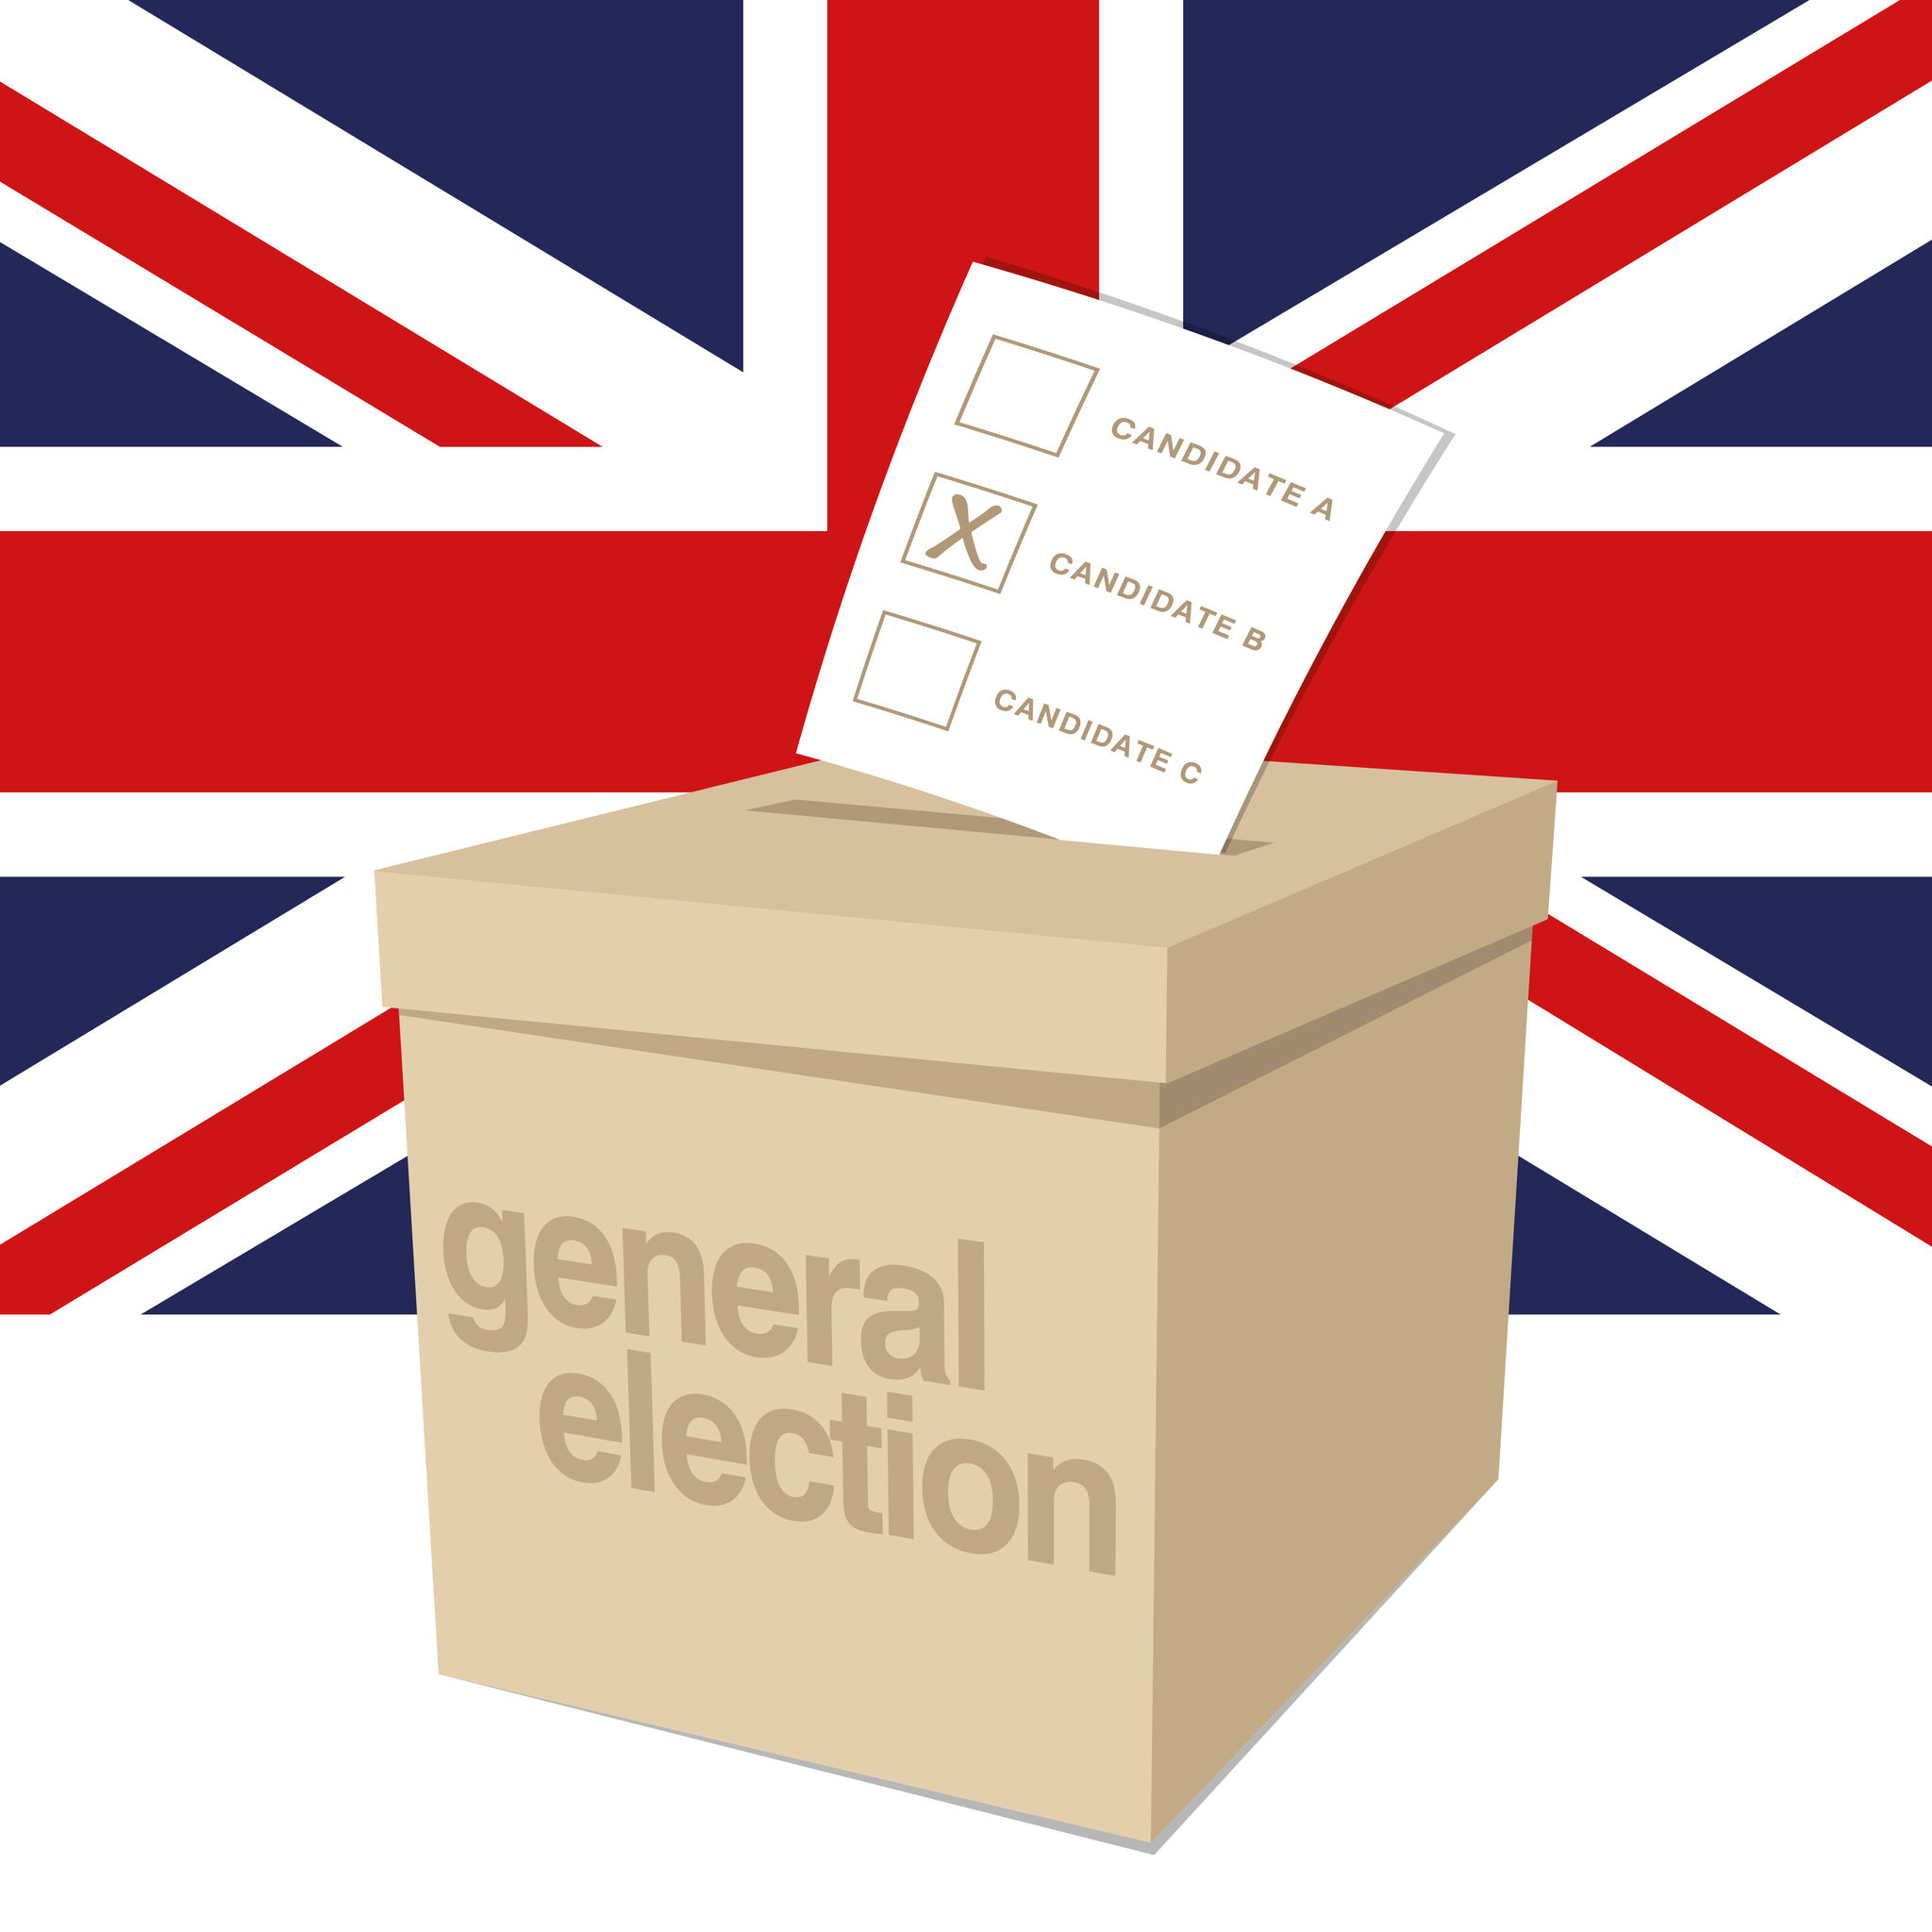 37239578 - ballot box for a uk general election